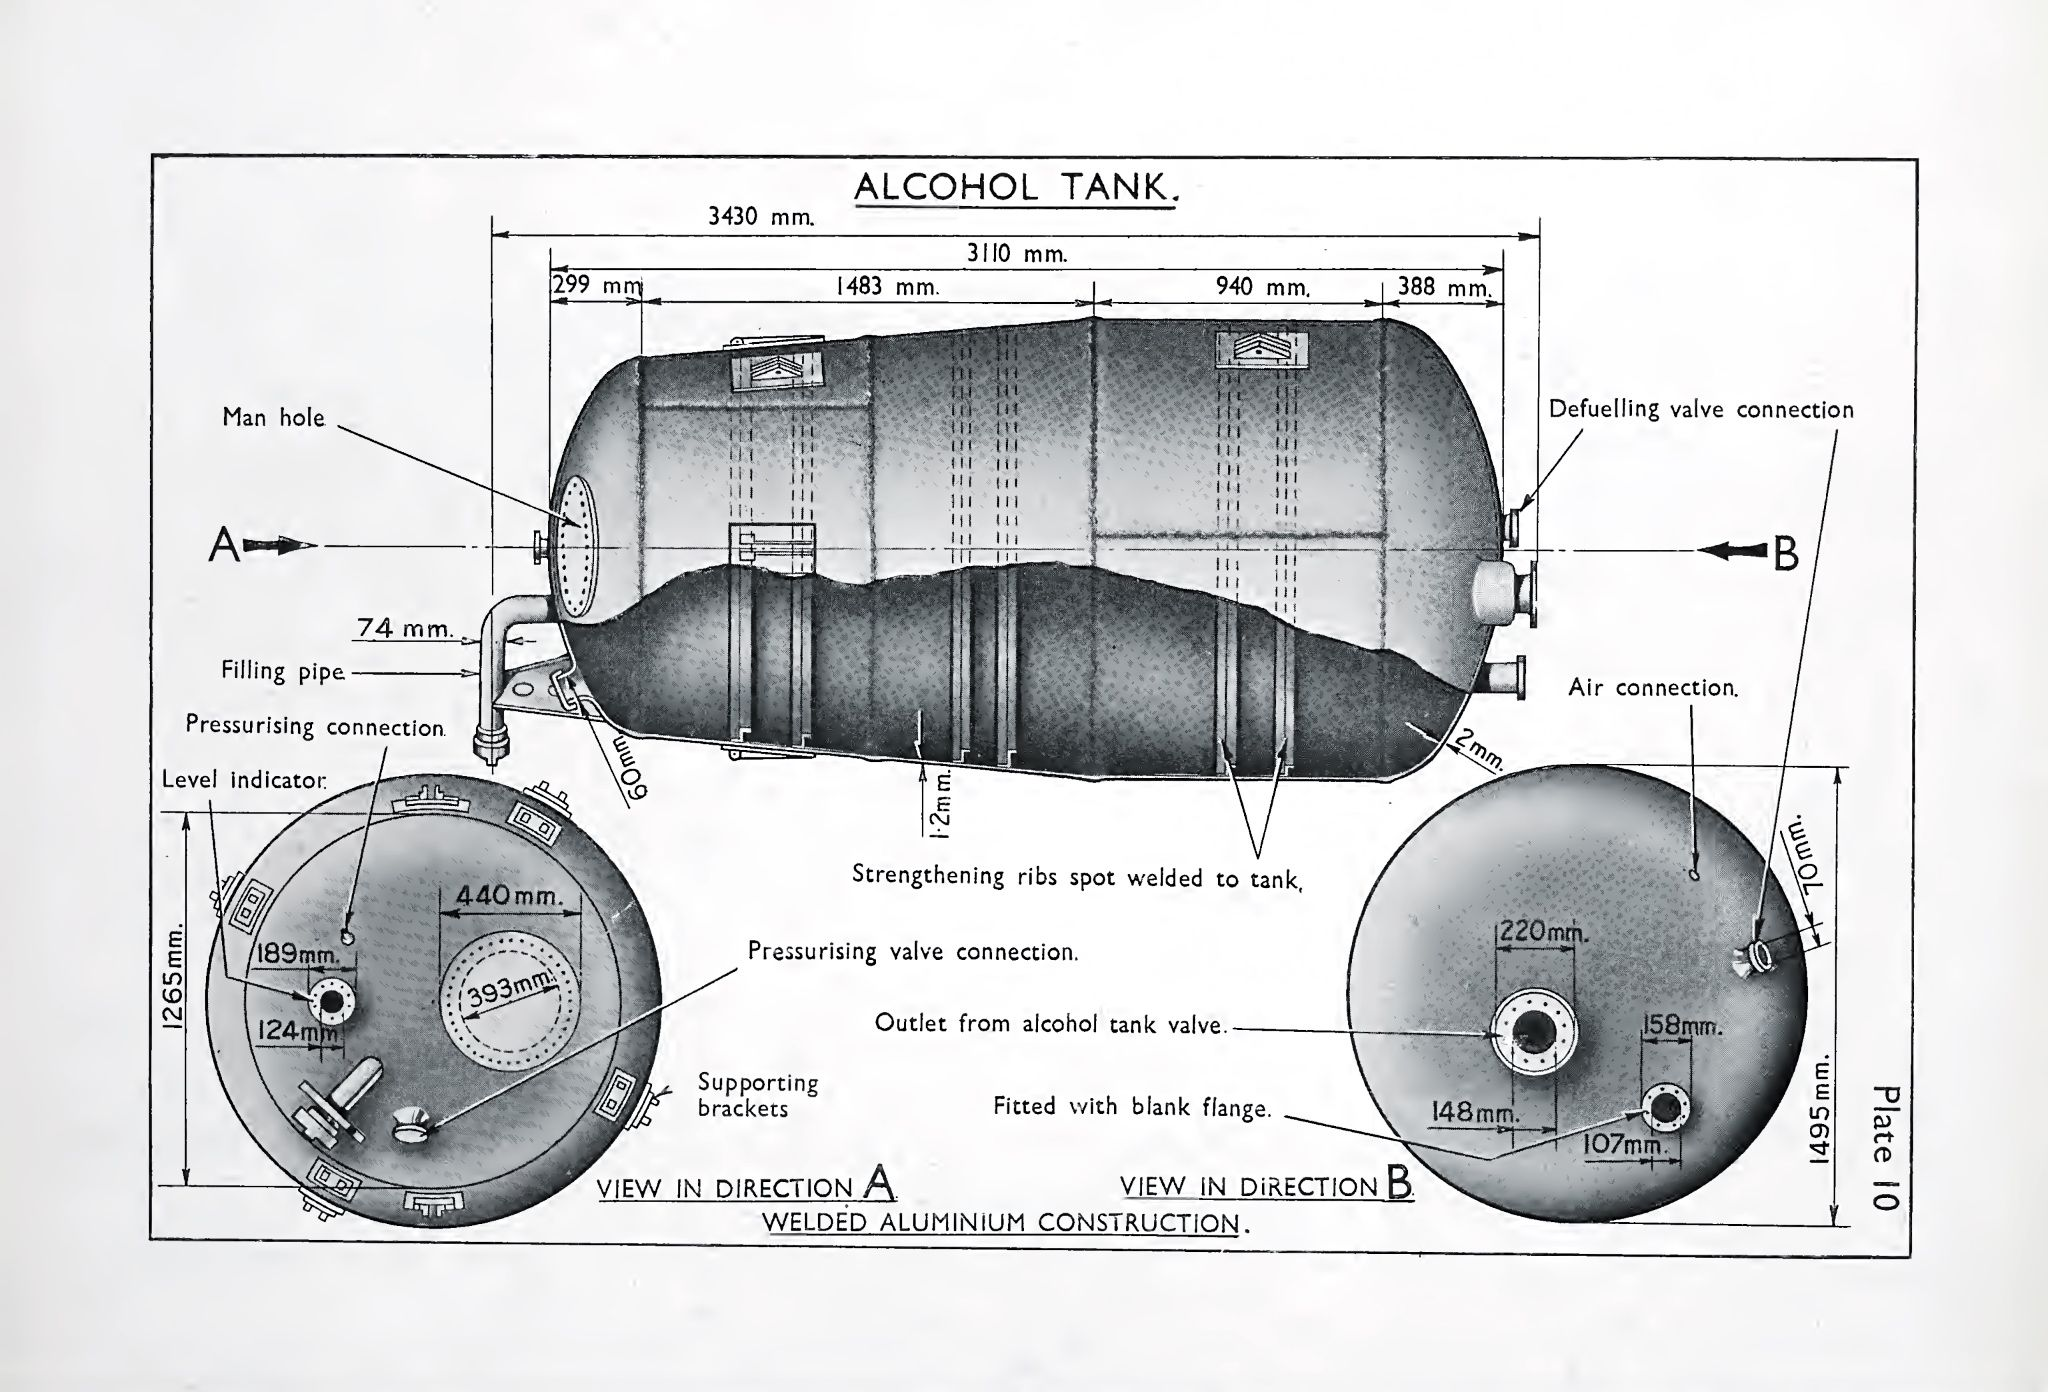 hight resolution of alcohol tank of the a4 v2 rocket